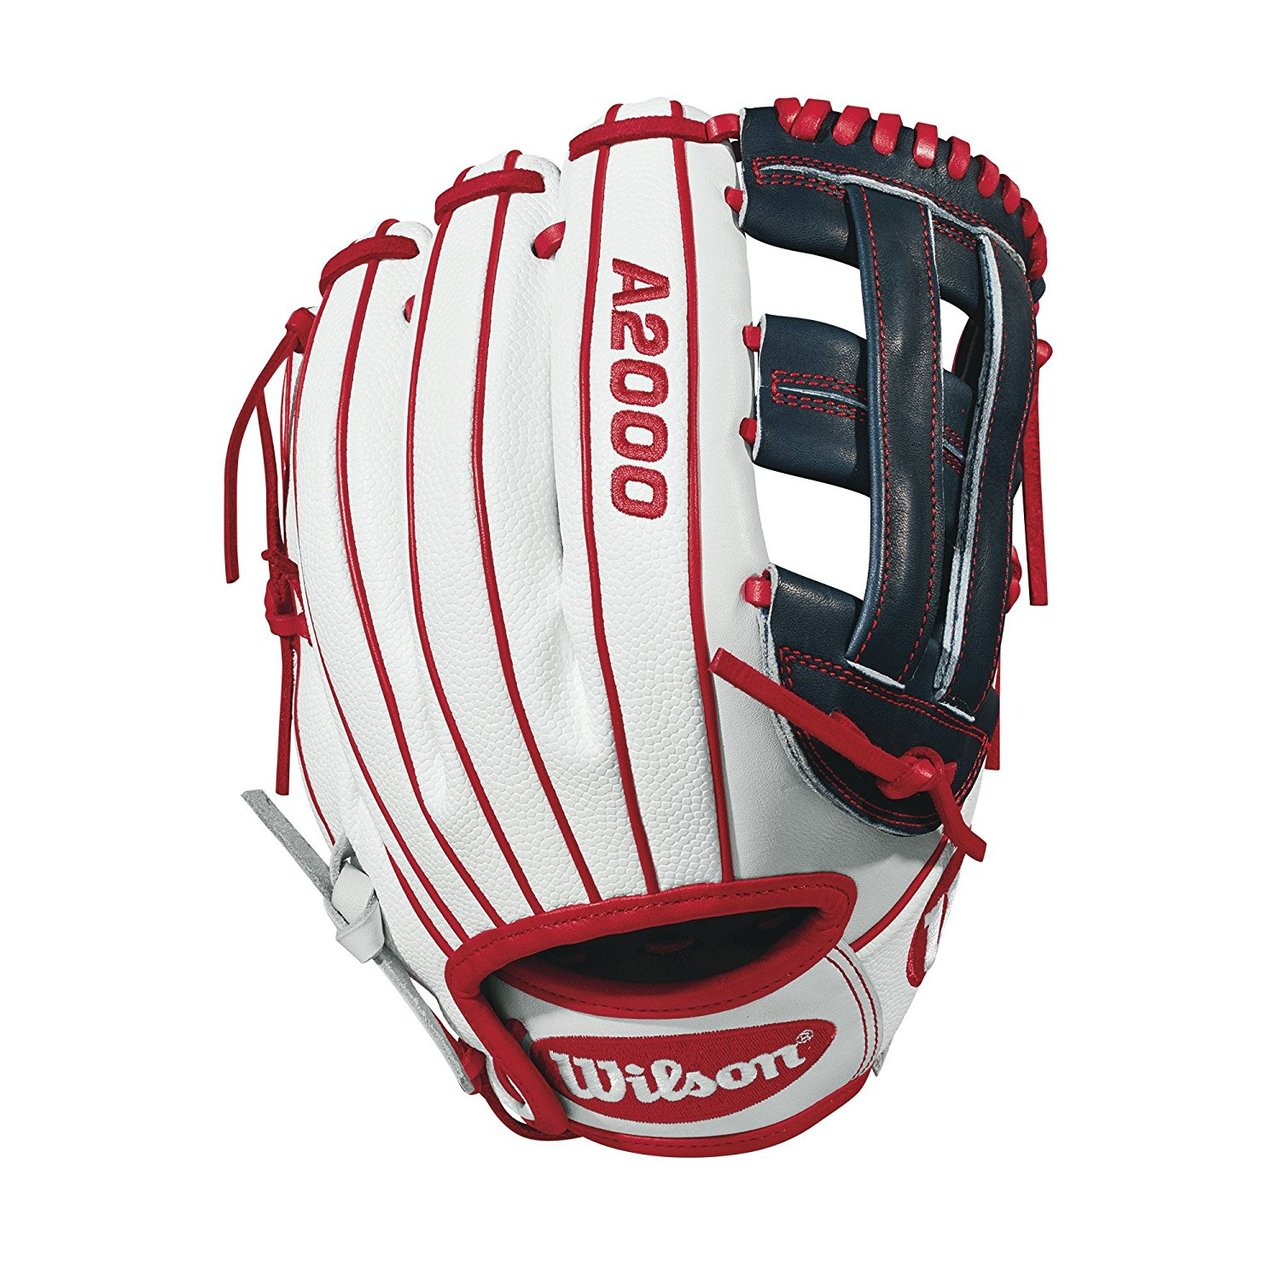 One of the best athletes in softball carries one of the hottest gamers. Sierra Romero's A2000® SR32 GM stands out with white SuperSkin™ and navy and red accents -- the type of piece that's set to make a statement the way Sierra will for years to come.     The Wilson A2000® fastpitch line is a serious glove for a serious player. The 2018 lineup is created with the Custom Fit™ System so that every fastpitch player can have a glove that Fit™s her hand -- no matter how tight she wears it. The superior feel and durability come from the premium Pro Stock leather that breaks in perfectly and lasts from one season to the next.